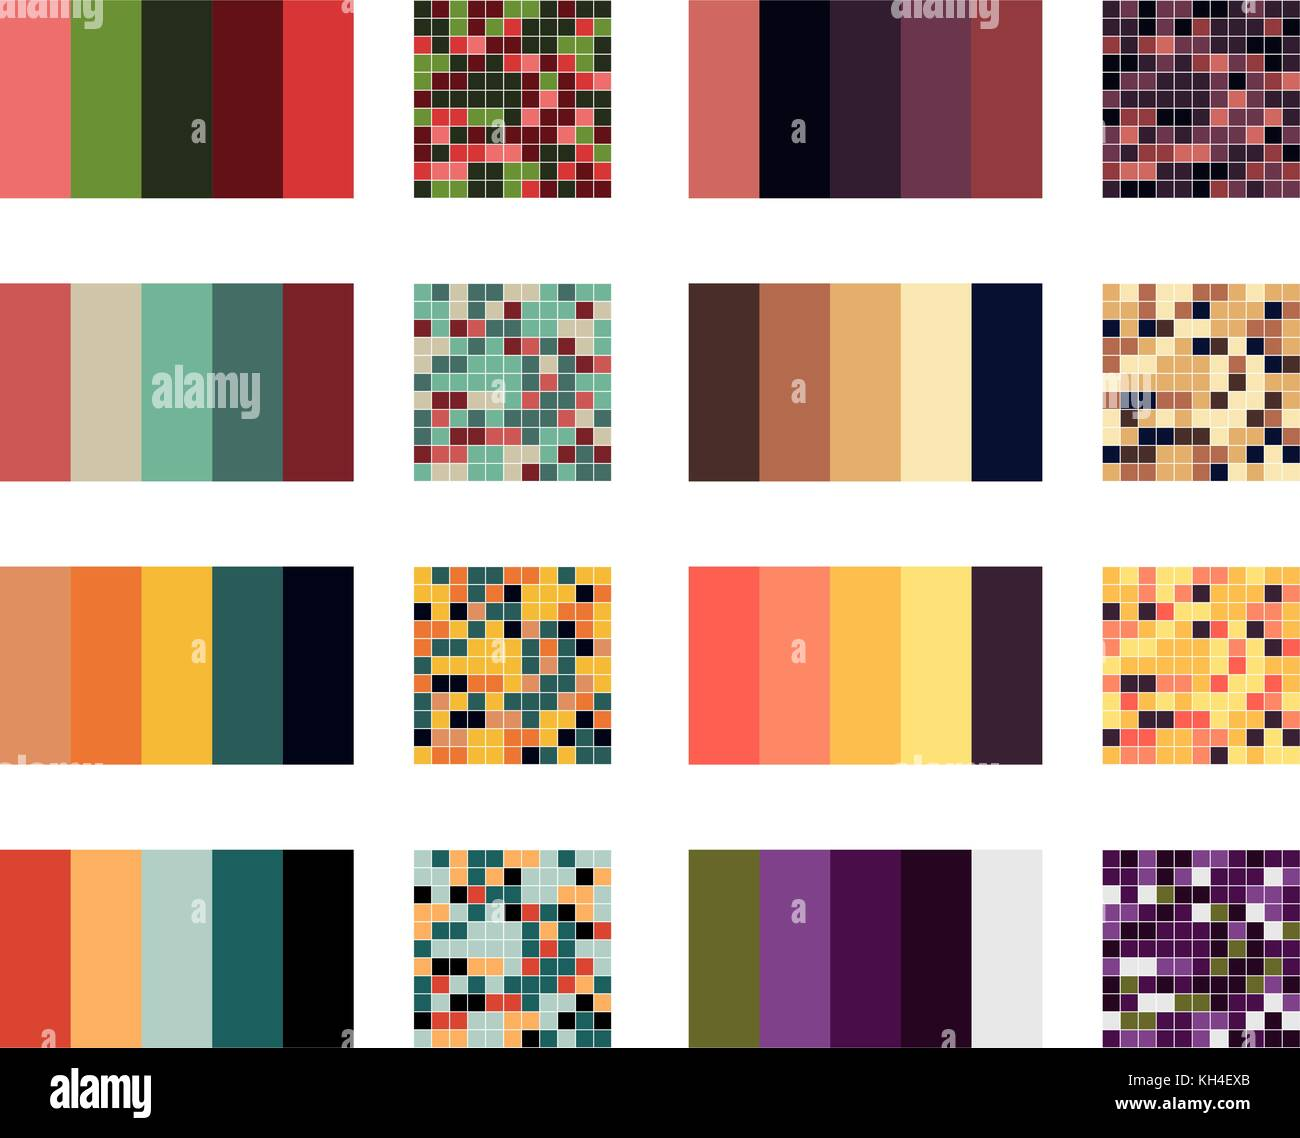 images?q=tbn:ANd9GcQh_l3eQ5xwiPy07kGEXjmjgmBKBRB7H2mRxCGhv1tFWg5c_mWT Awesome Art Color Palette @bookmarkpages.info